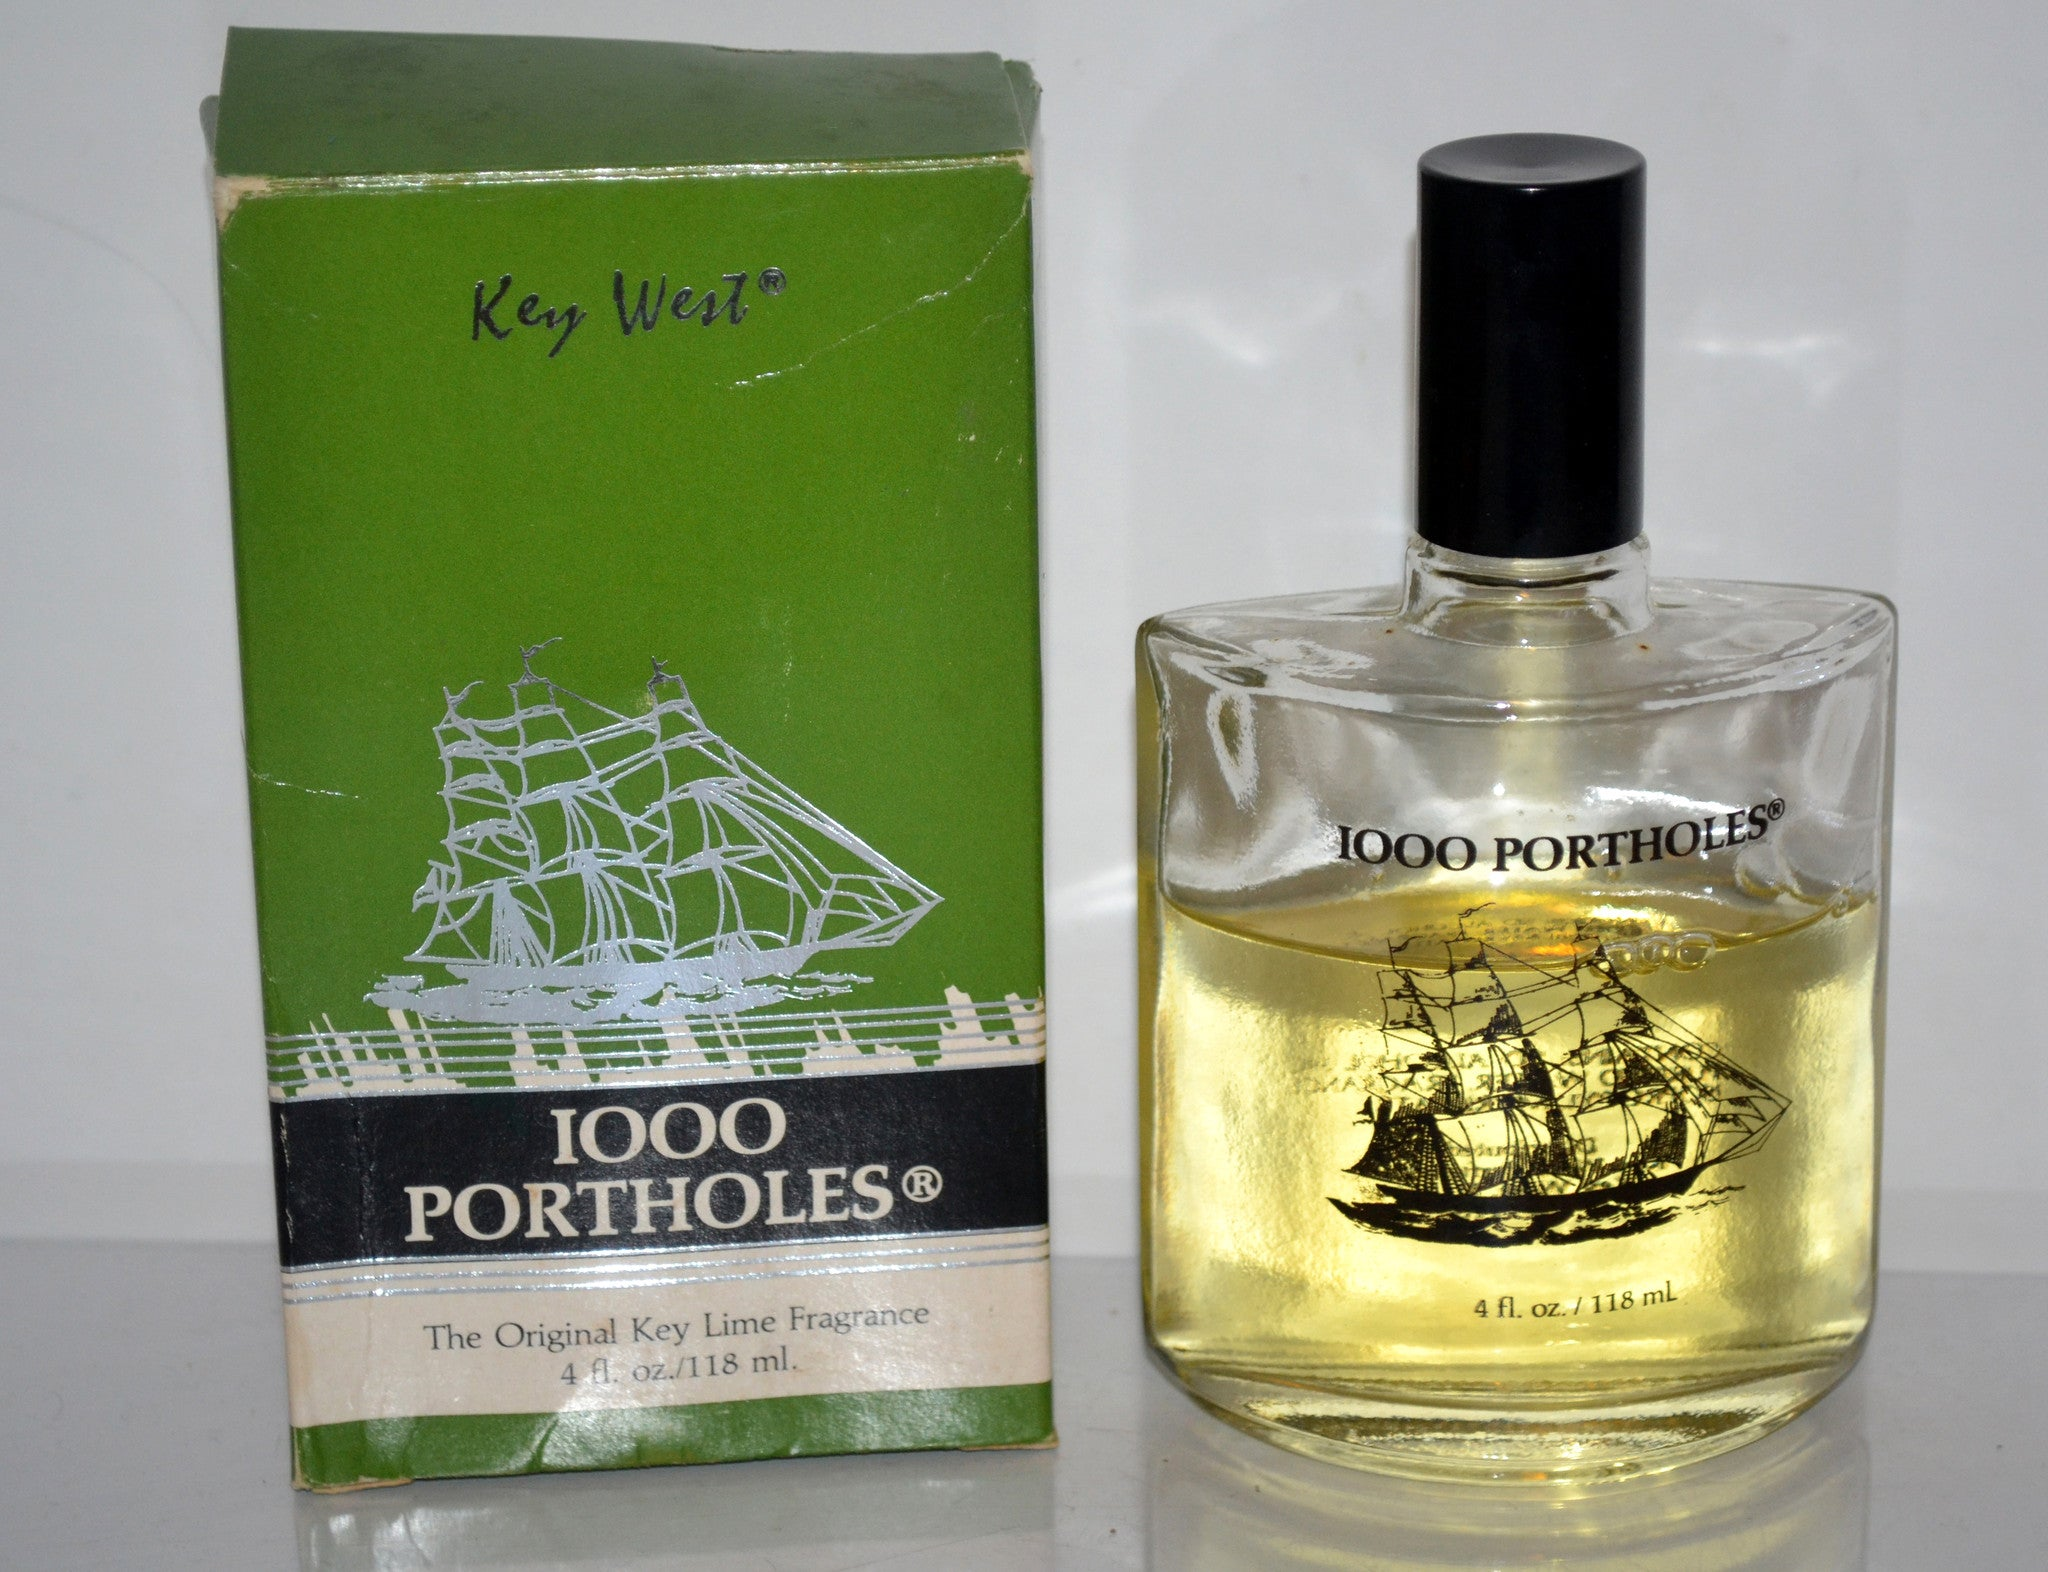 Key West 1000 Portholes Fragrance